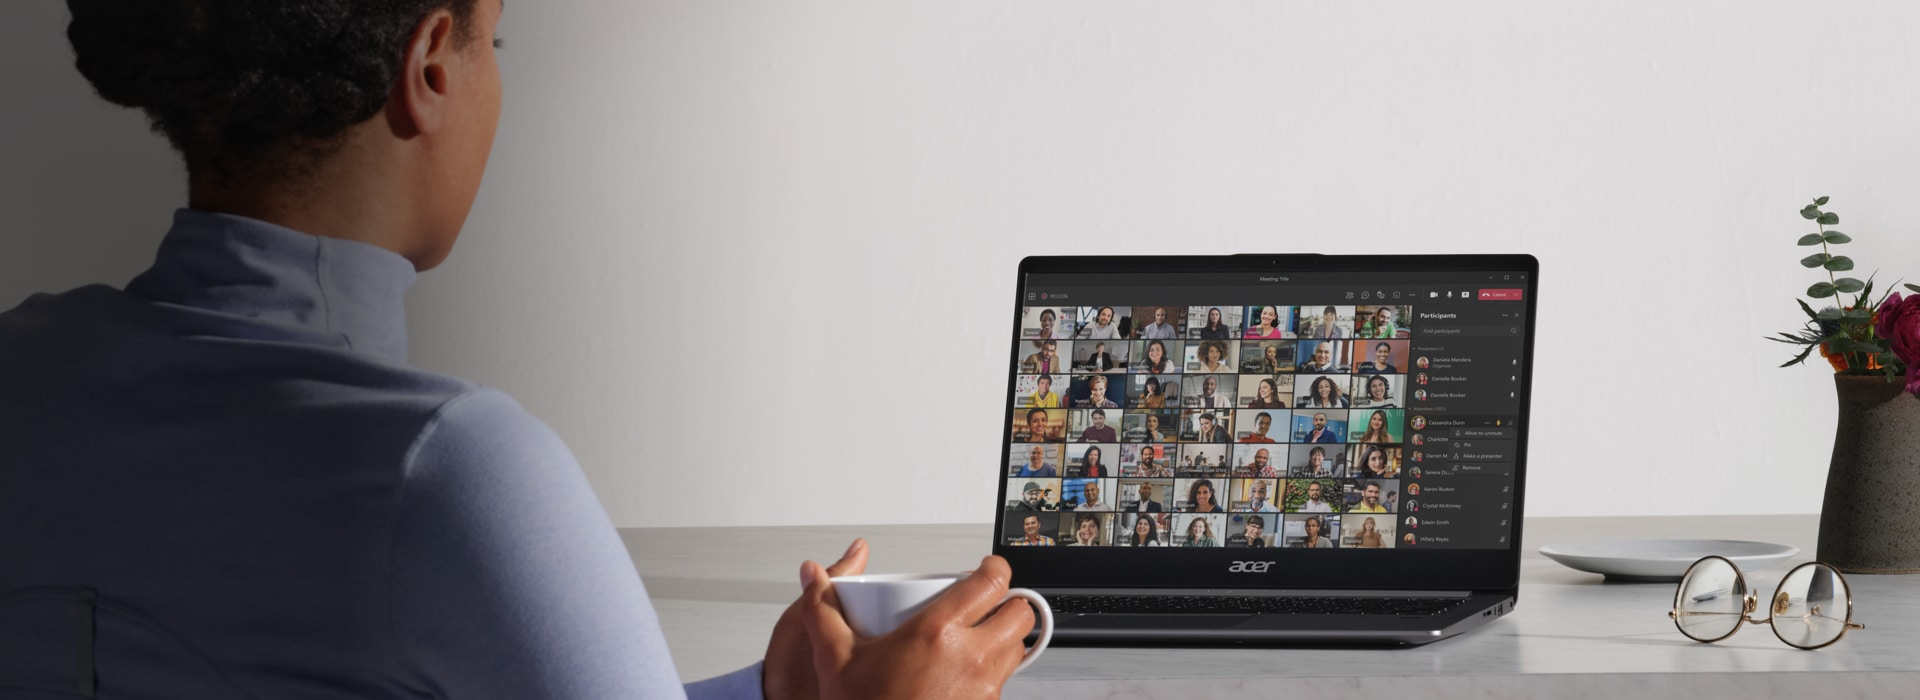 A person holding a coffee mug while on a Teams video call with many participants.